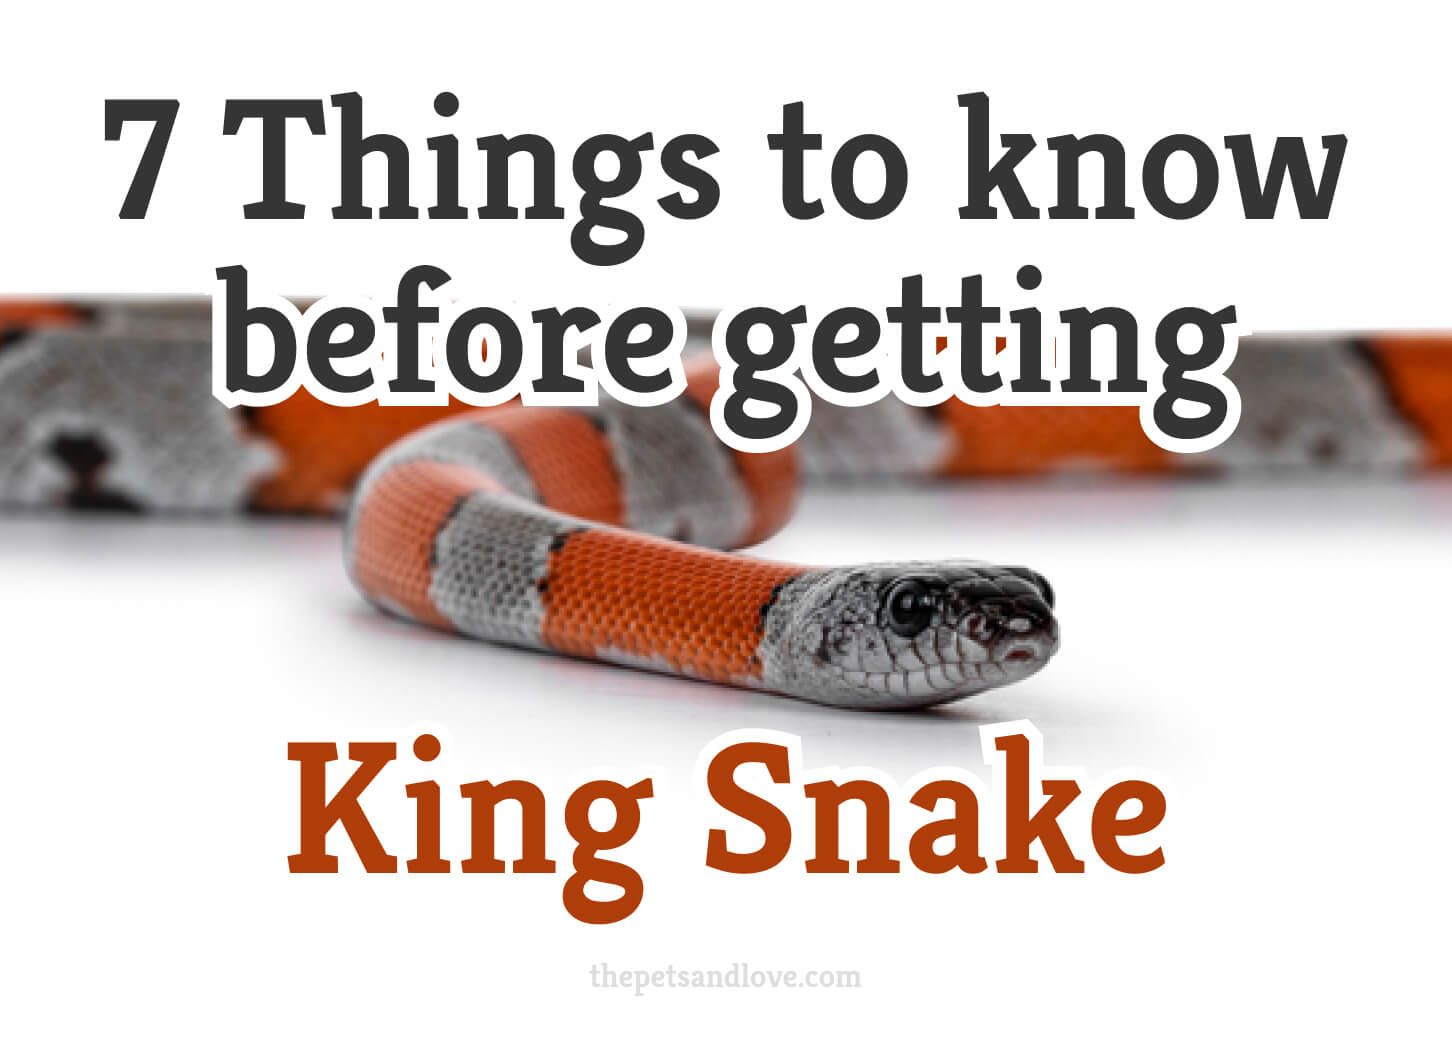 7 things you should know before getting a kingsnake